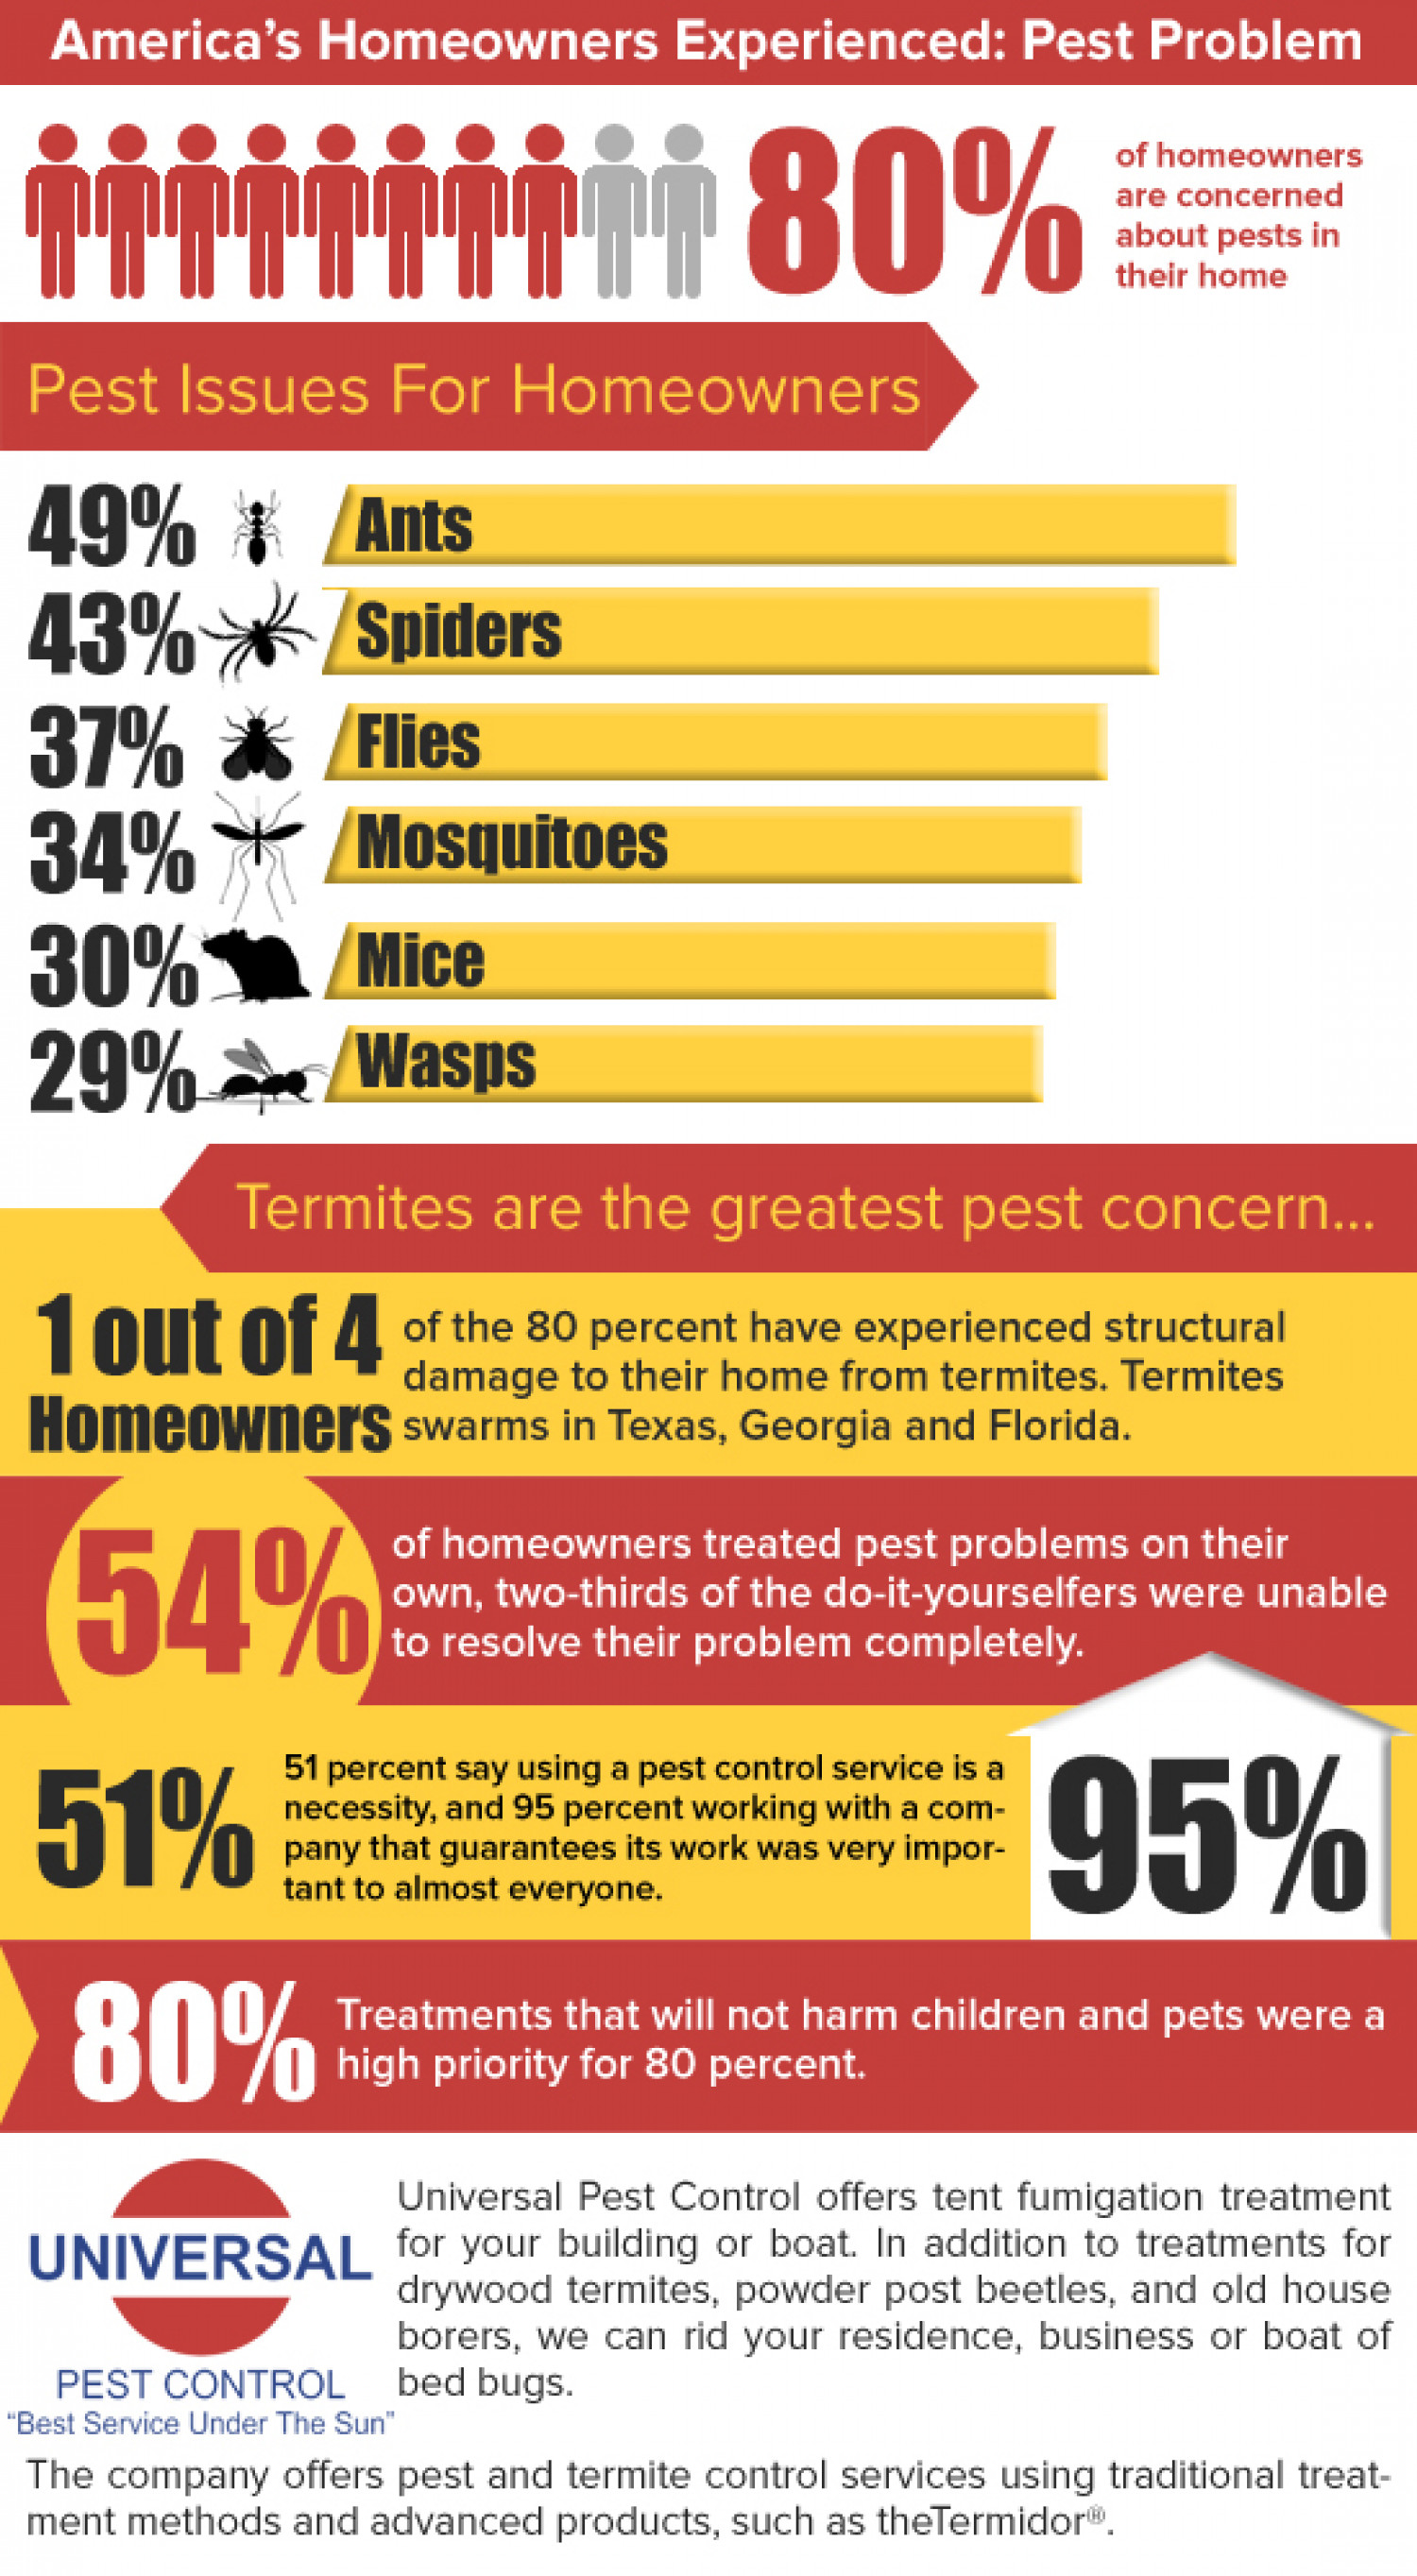 Americas Homeowners Experiences - Pest Control Infographic